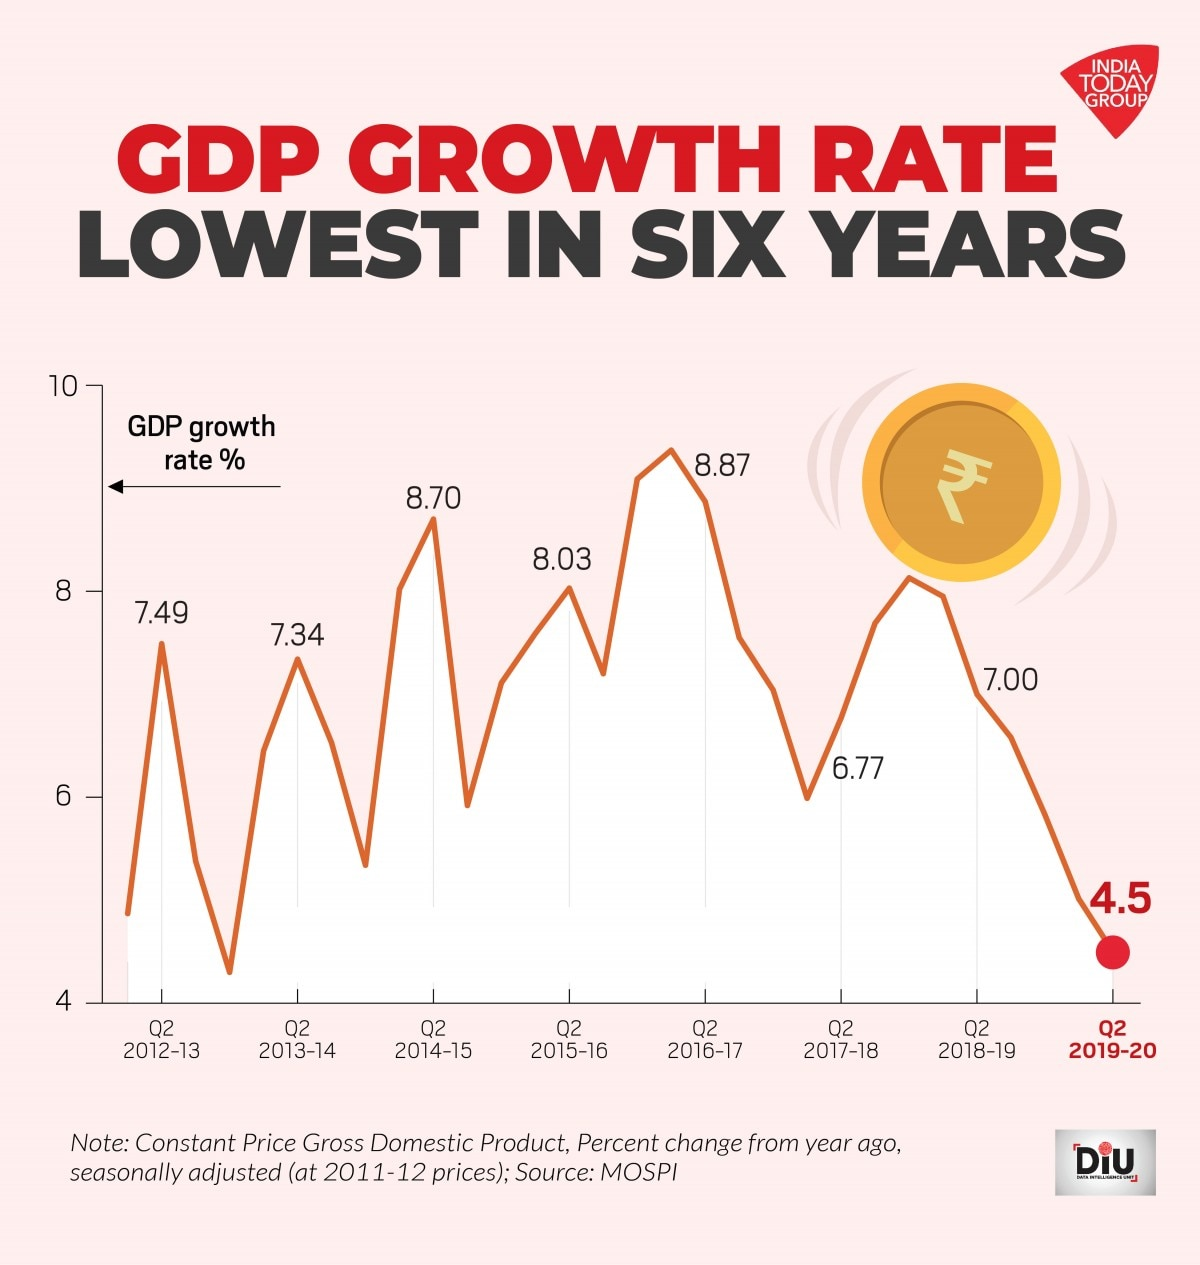 India GDP growth rate for July-September 2019 falls to 4.5%